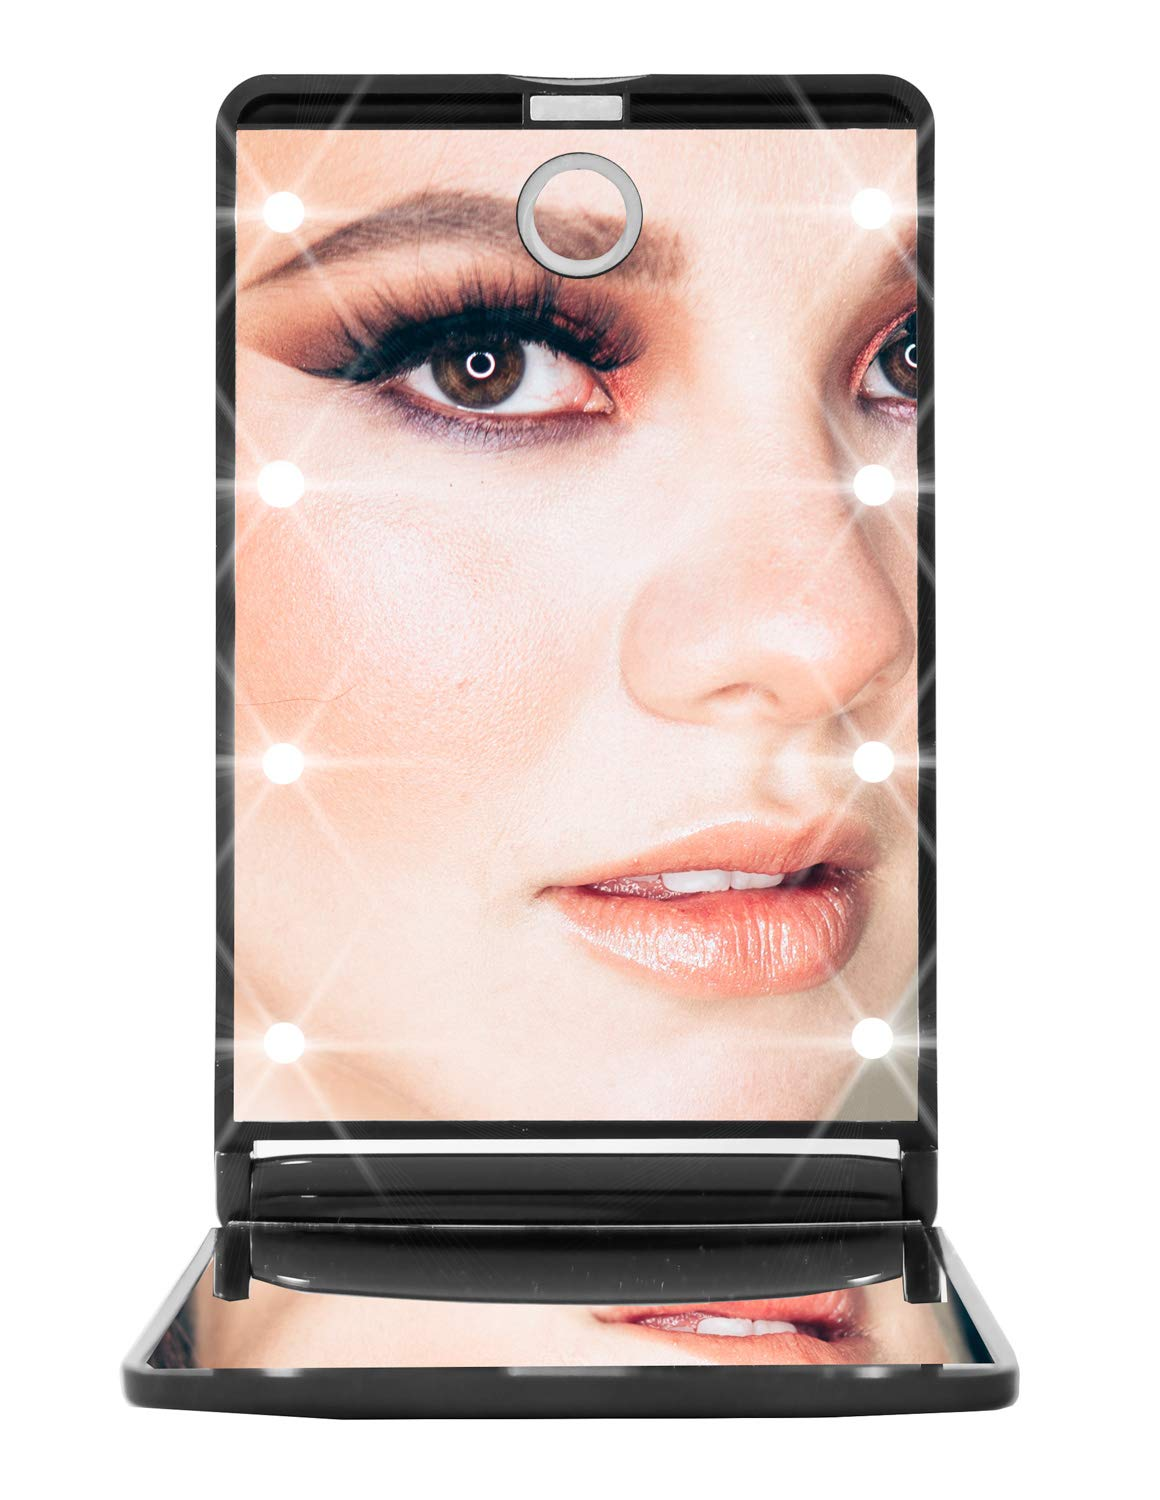 Small Handheld Portable Foldable Cosmetic Makeup Travel Mirror with LED Lights 2x Magnified